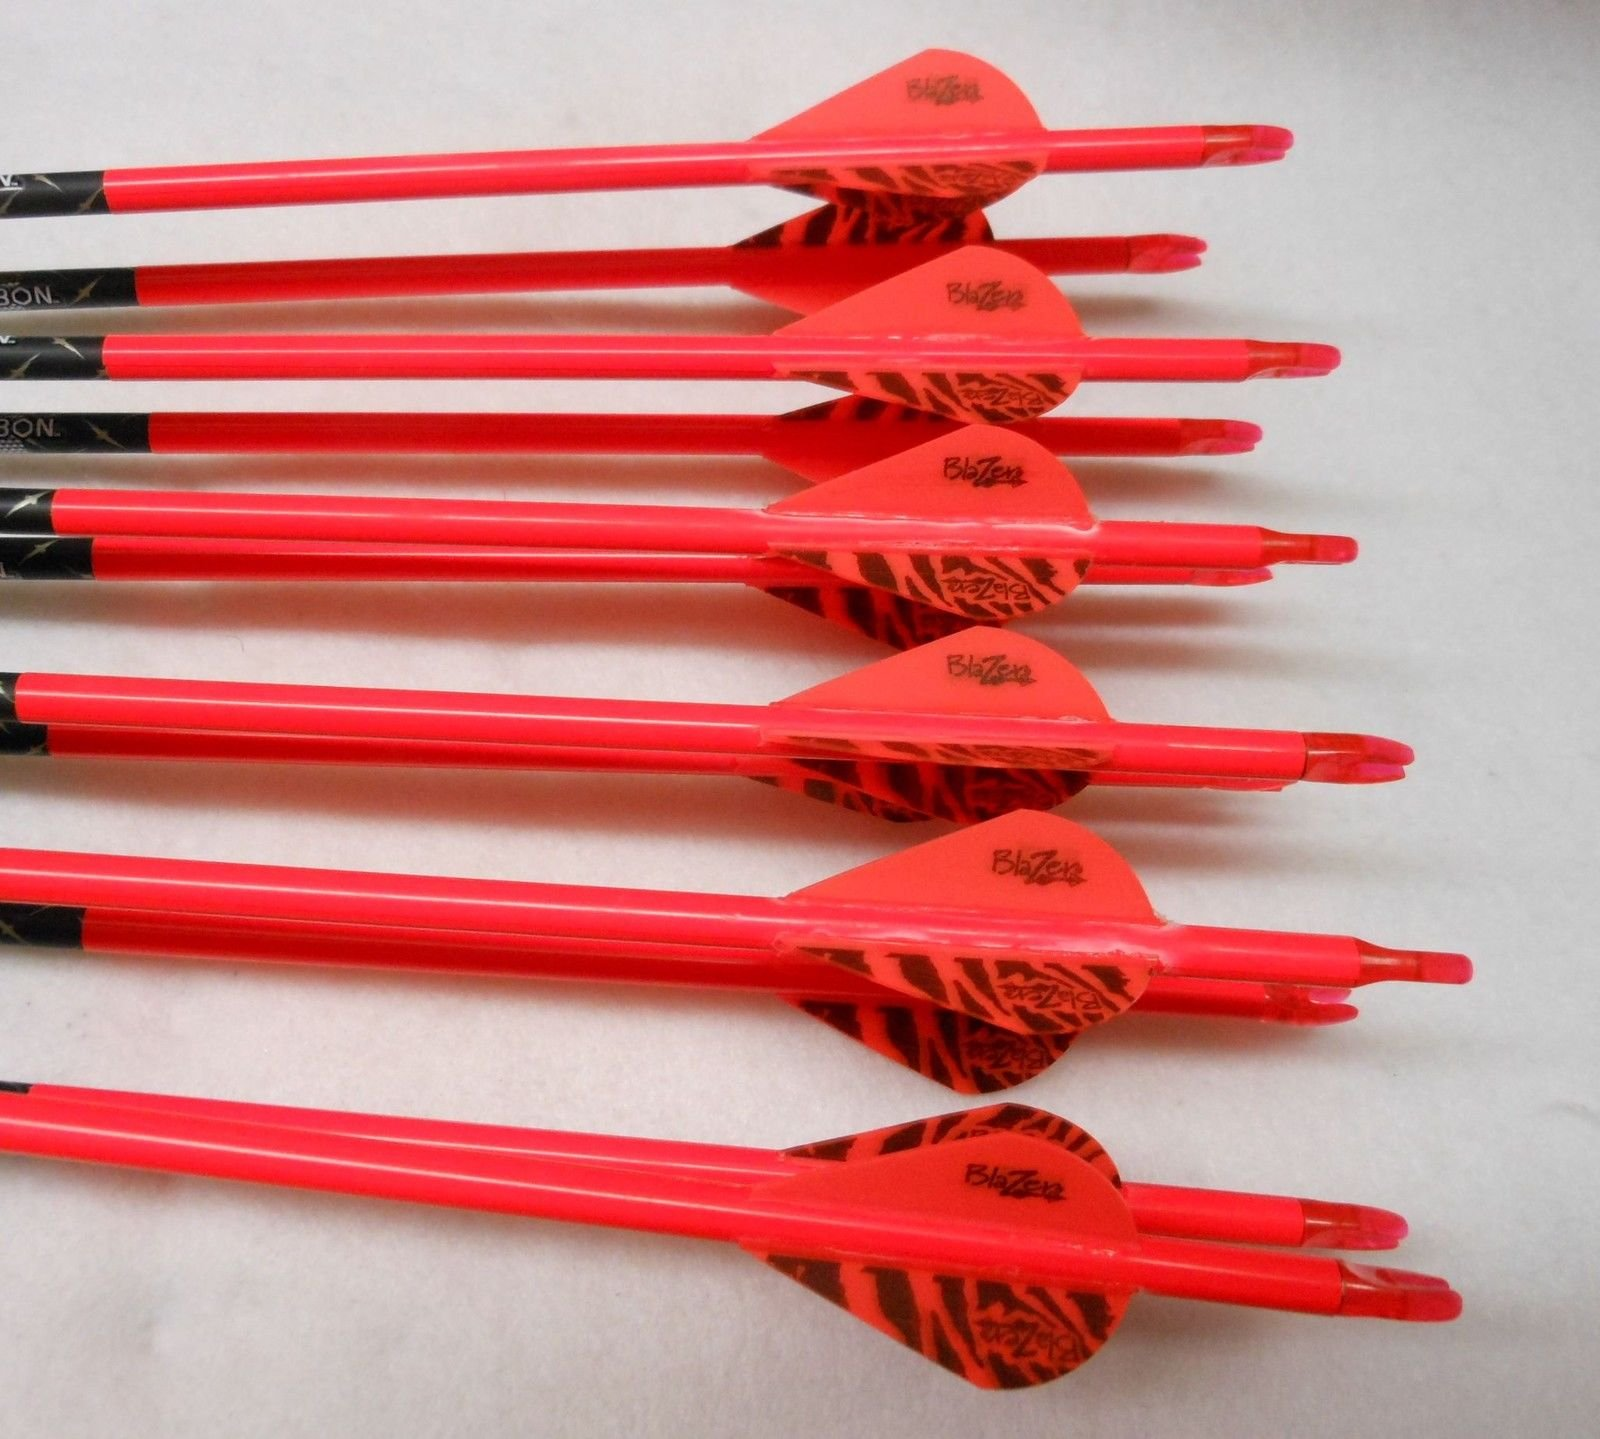 Gold Tip Pro Hunter 7595/340 Carbon Arrows w/Blazer Vanes Wraps 1 Dz.